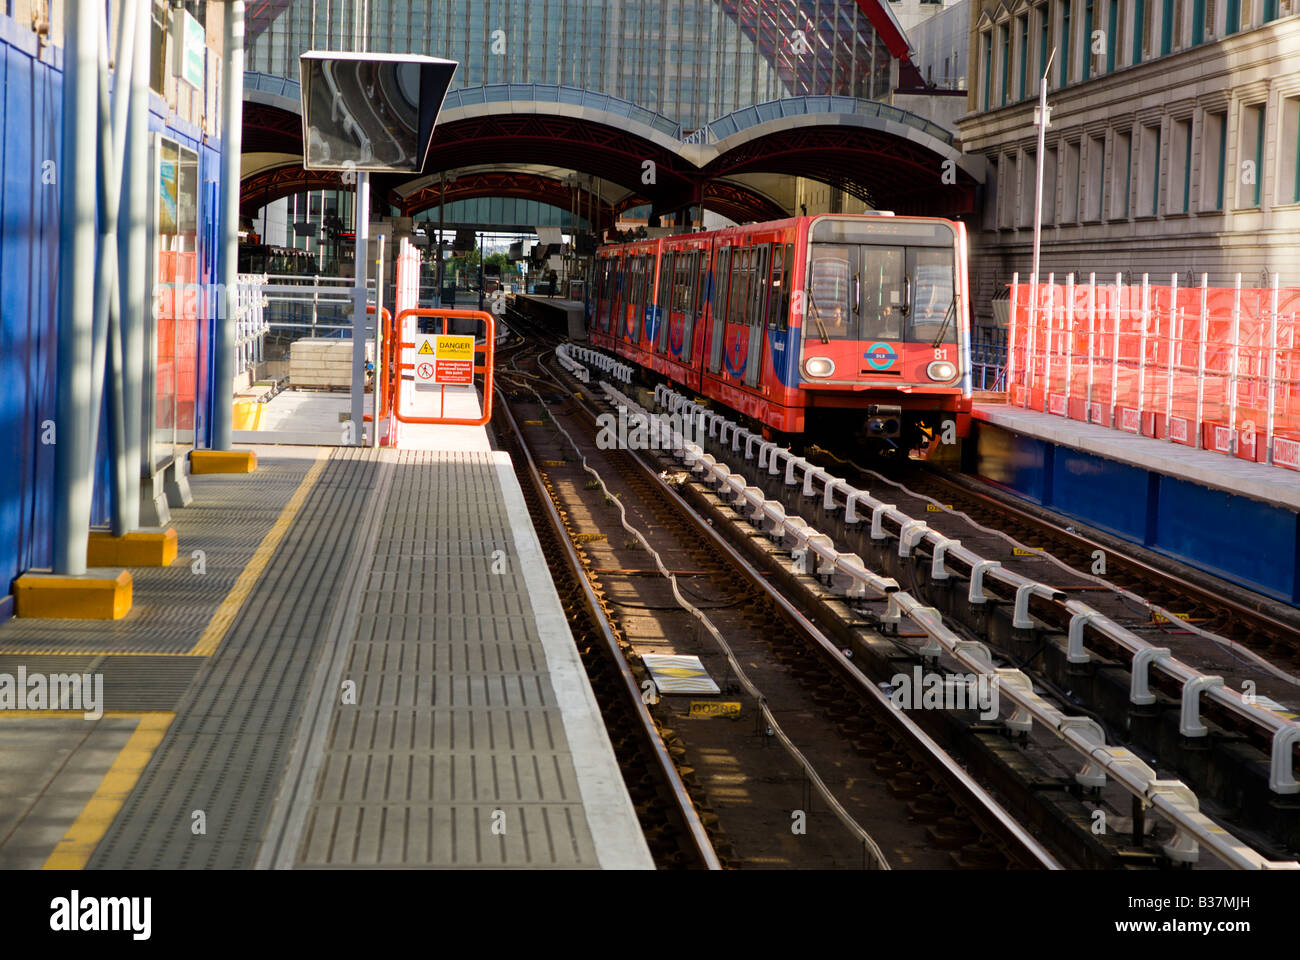 Underground Train arriving at the platform in London. - Stock Image